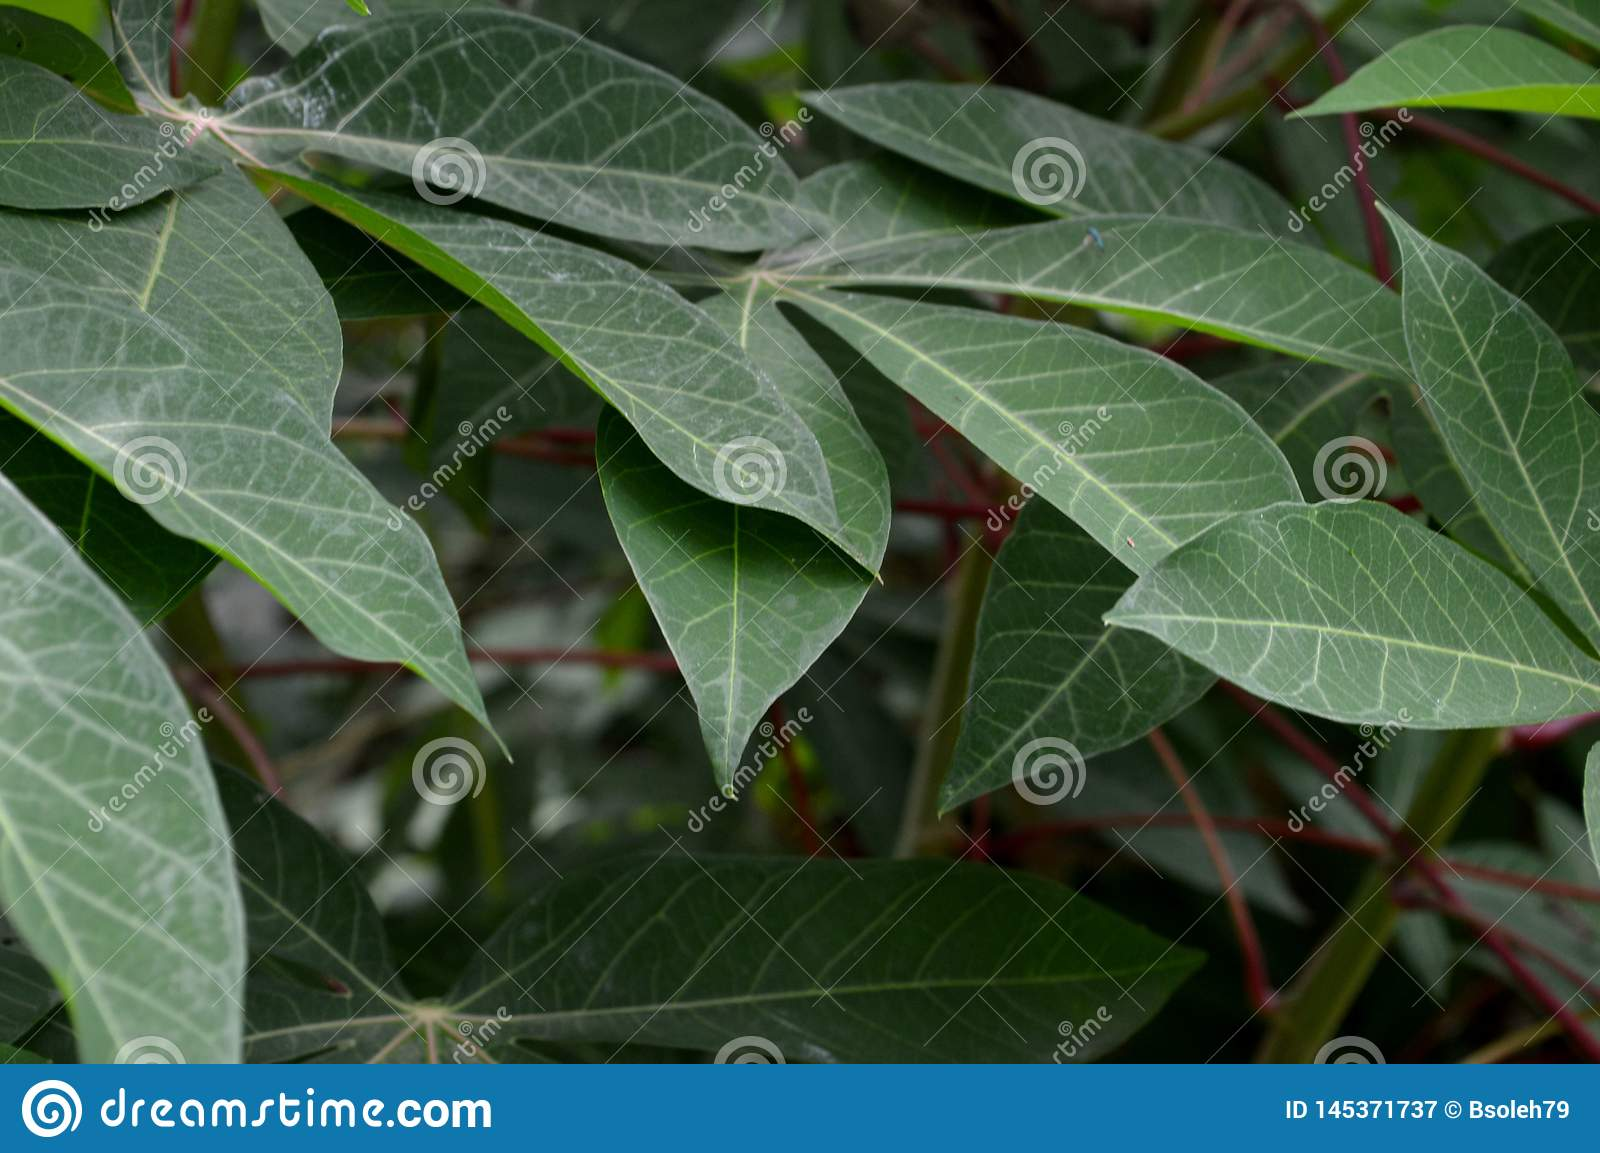 The shape and texture of tropical green leaves